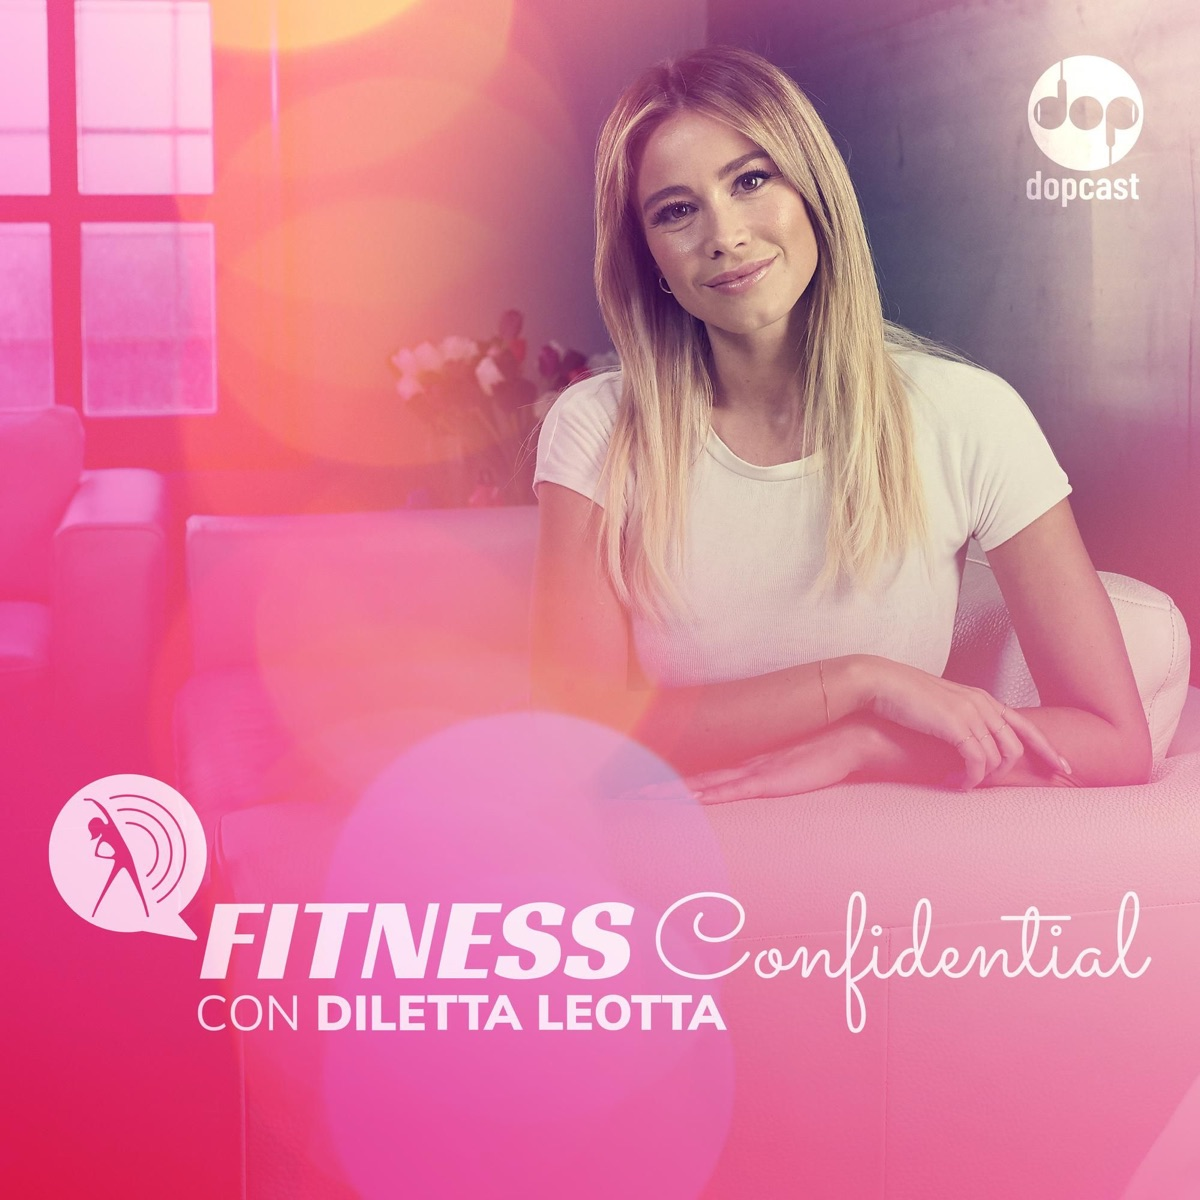 Fitness Confidential con Diletta Leotta